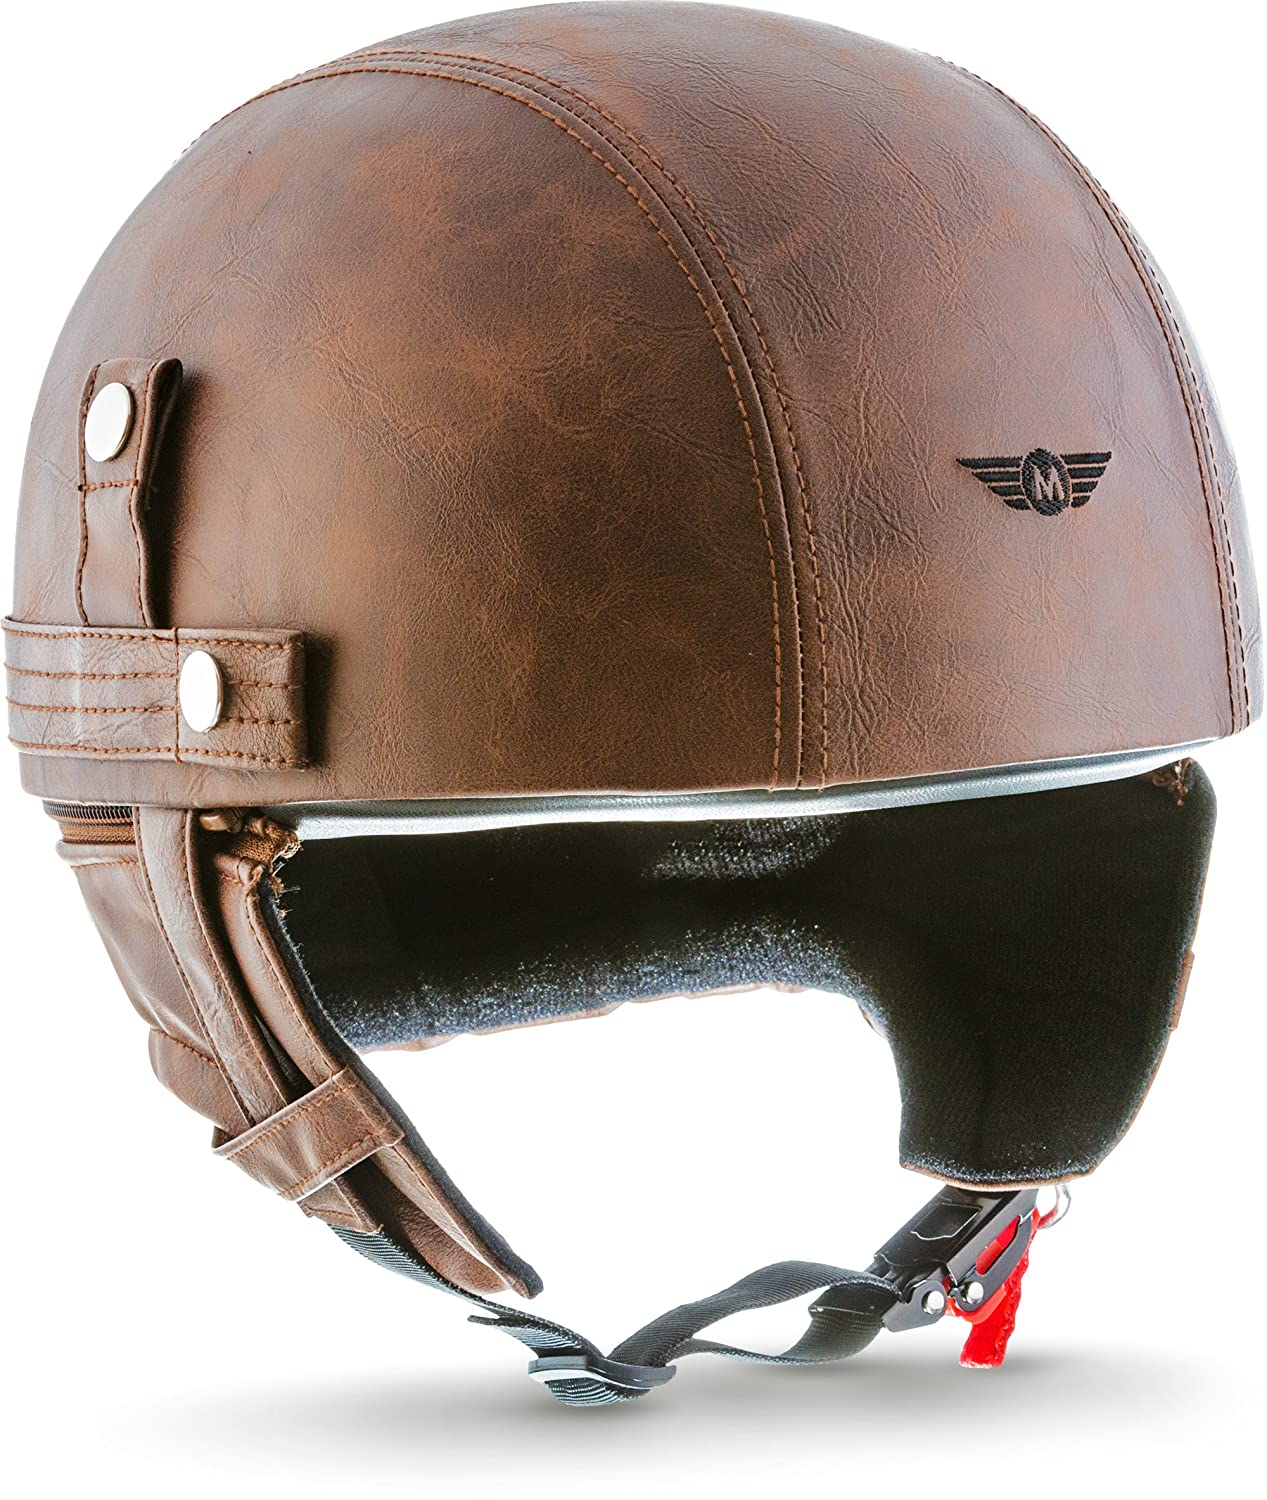 MOTO HELMETS D22  Leather Braincap Bombshell Helmet Vespa Motorcycle Helmet Scooter Helmet Jet Helmet Bobber Vintage Moped Scooter Helmet Pilot Cruiser Chopper Helmet Retro Leather with Fabric Carry Case MOITO HELMETS D22_LEATHER-BROWN_XXL